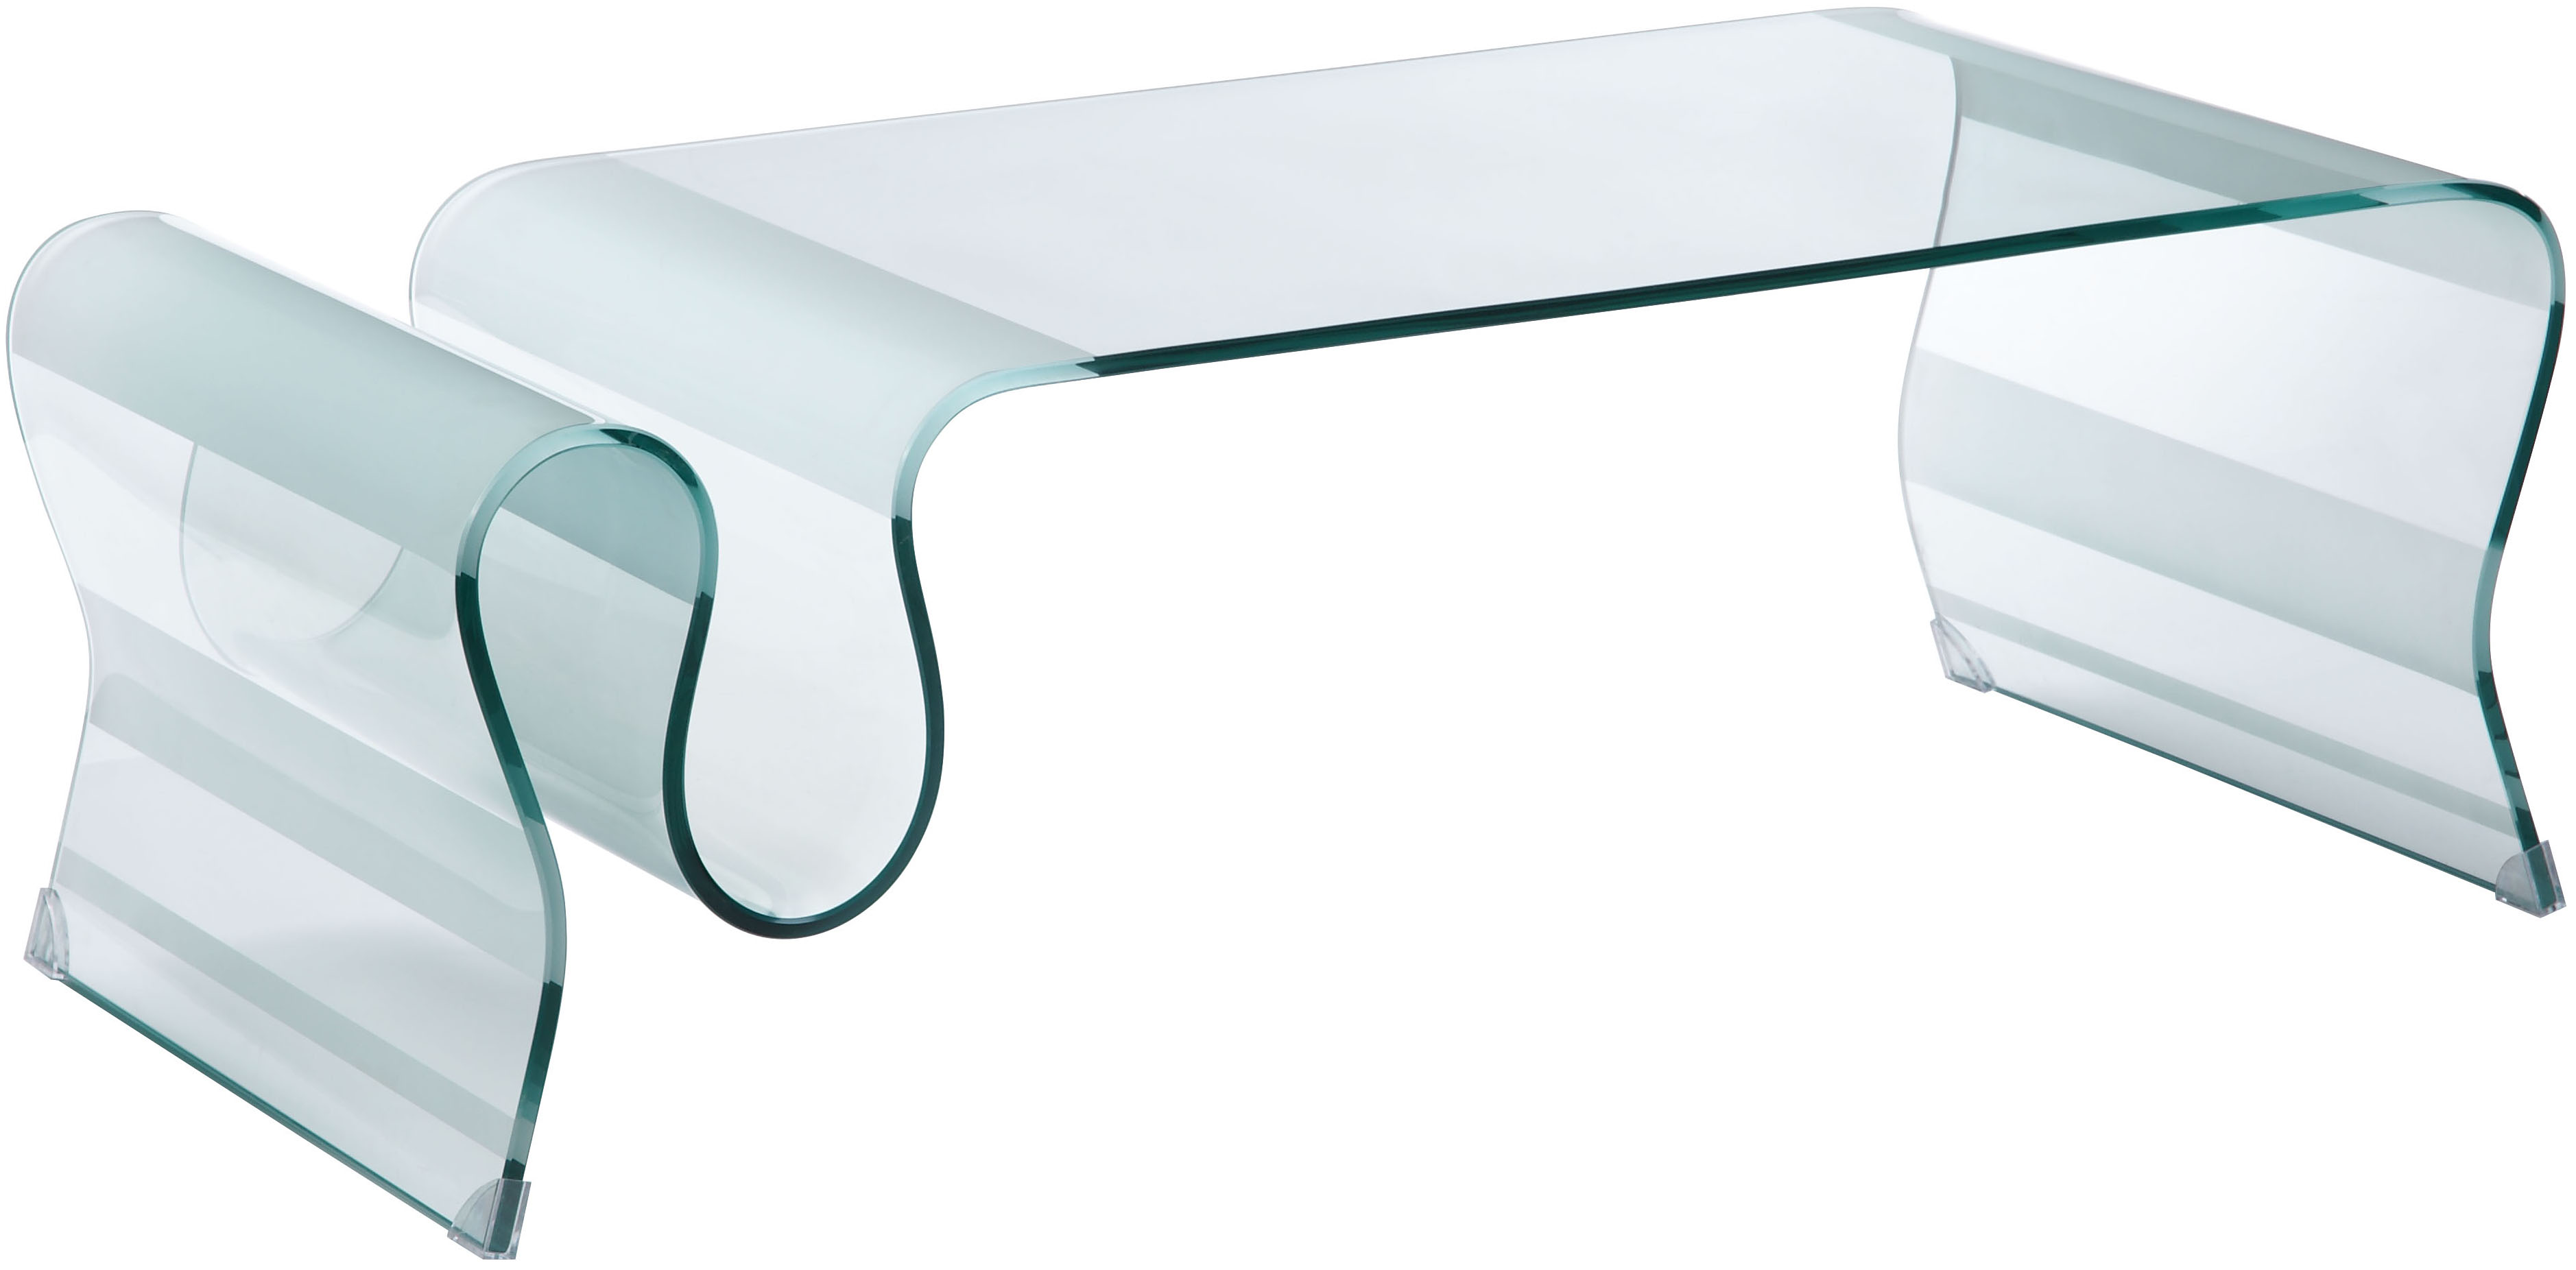 The Modern Glass Discovery Coffee Table By Zuo Modern